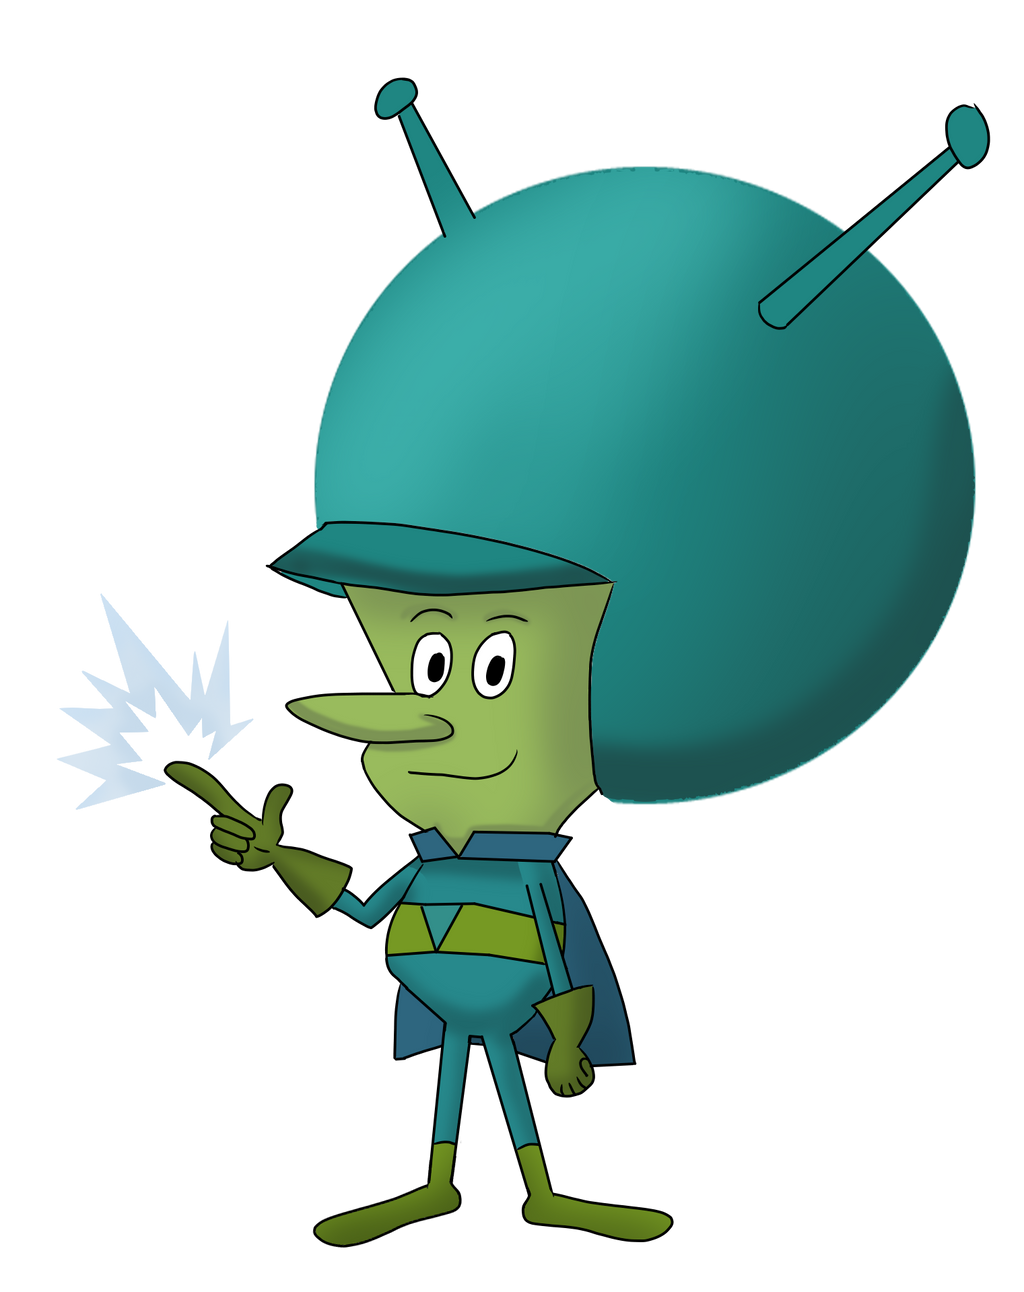 the_great_gazoo_by_captainedwardteague_ddd4yar-fullview.png